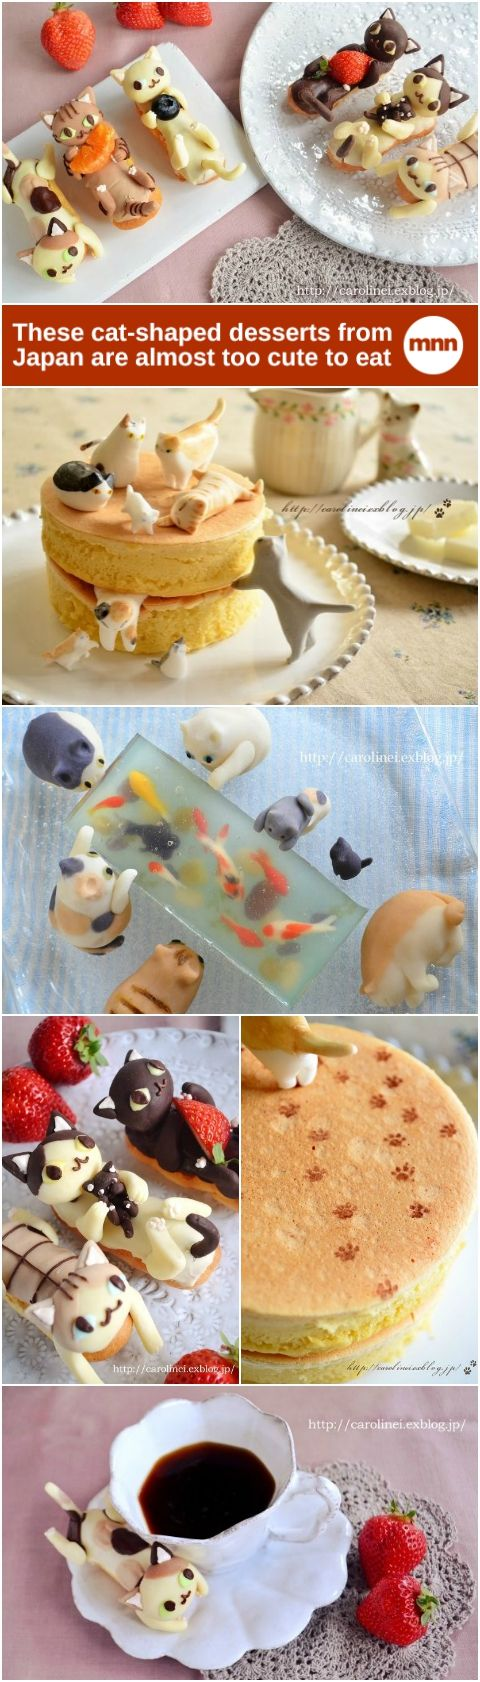 These sweet little dessert kitties are made by combining gyūhi (a softer version of mochi rice cake) with sweetened white bean paste to create a Japanese confectionery known as nerikiri.